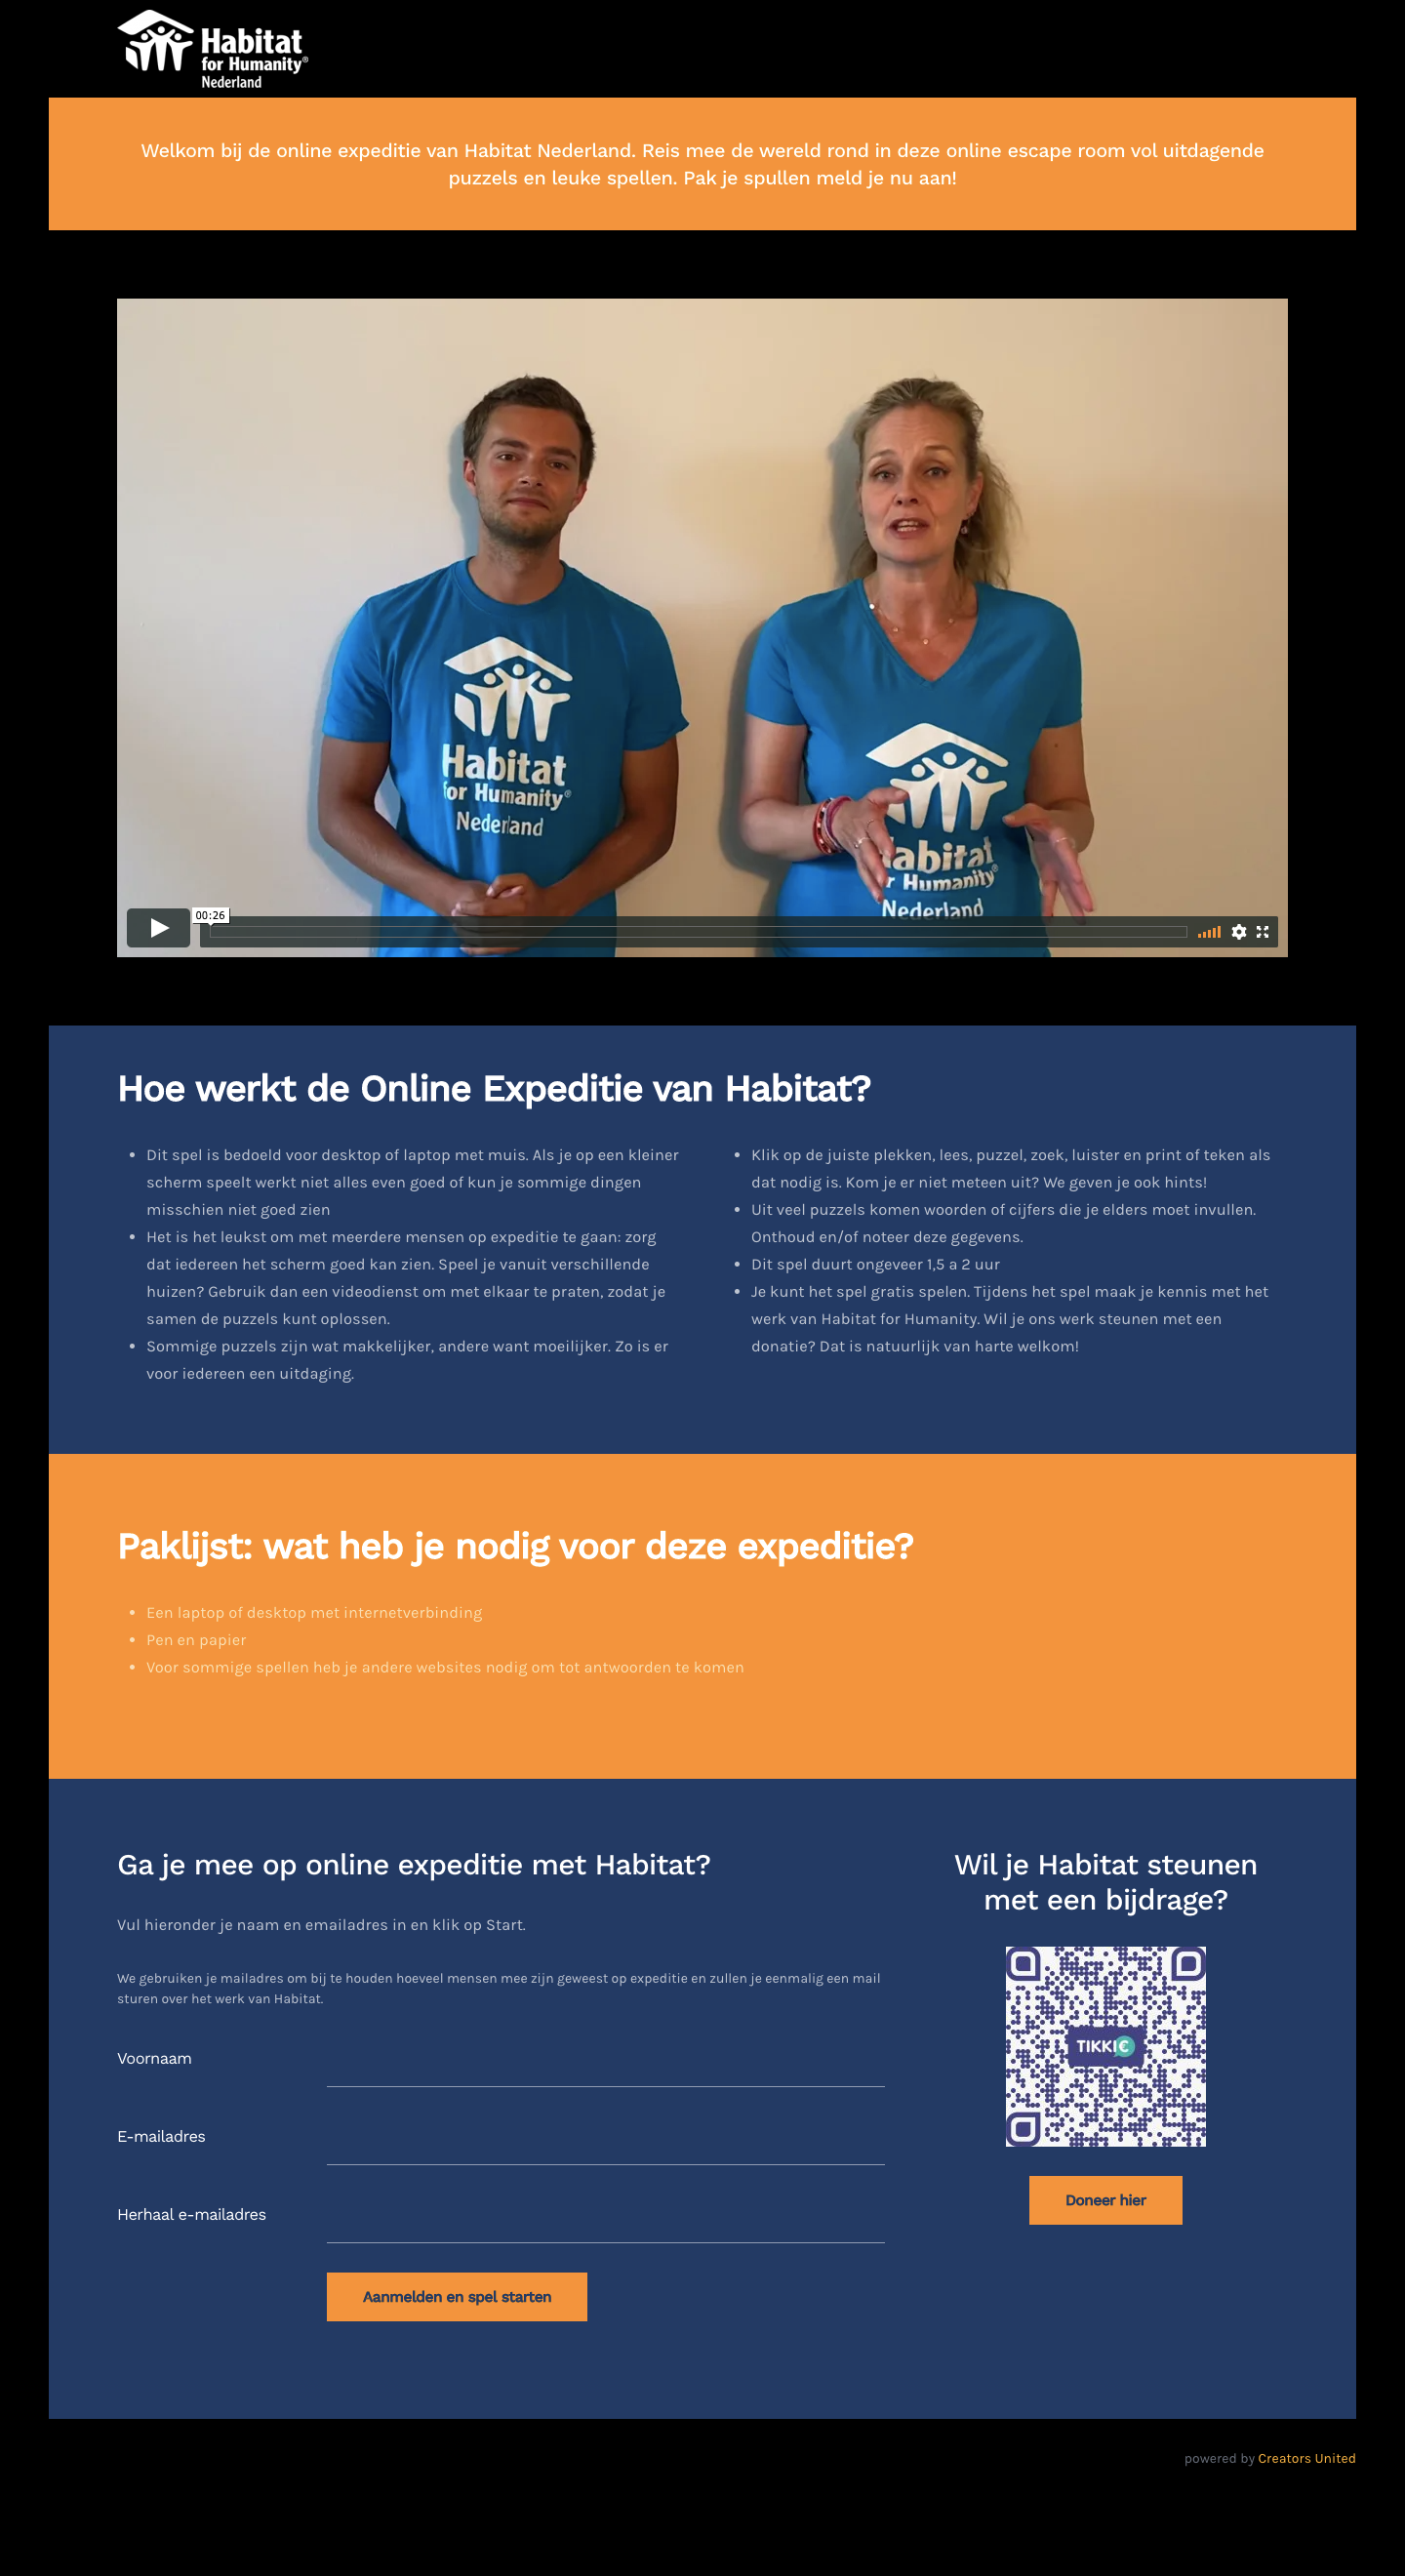 Habitat Online Expeditie